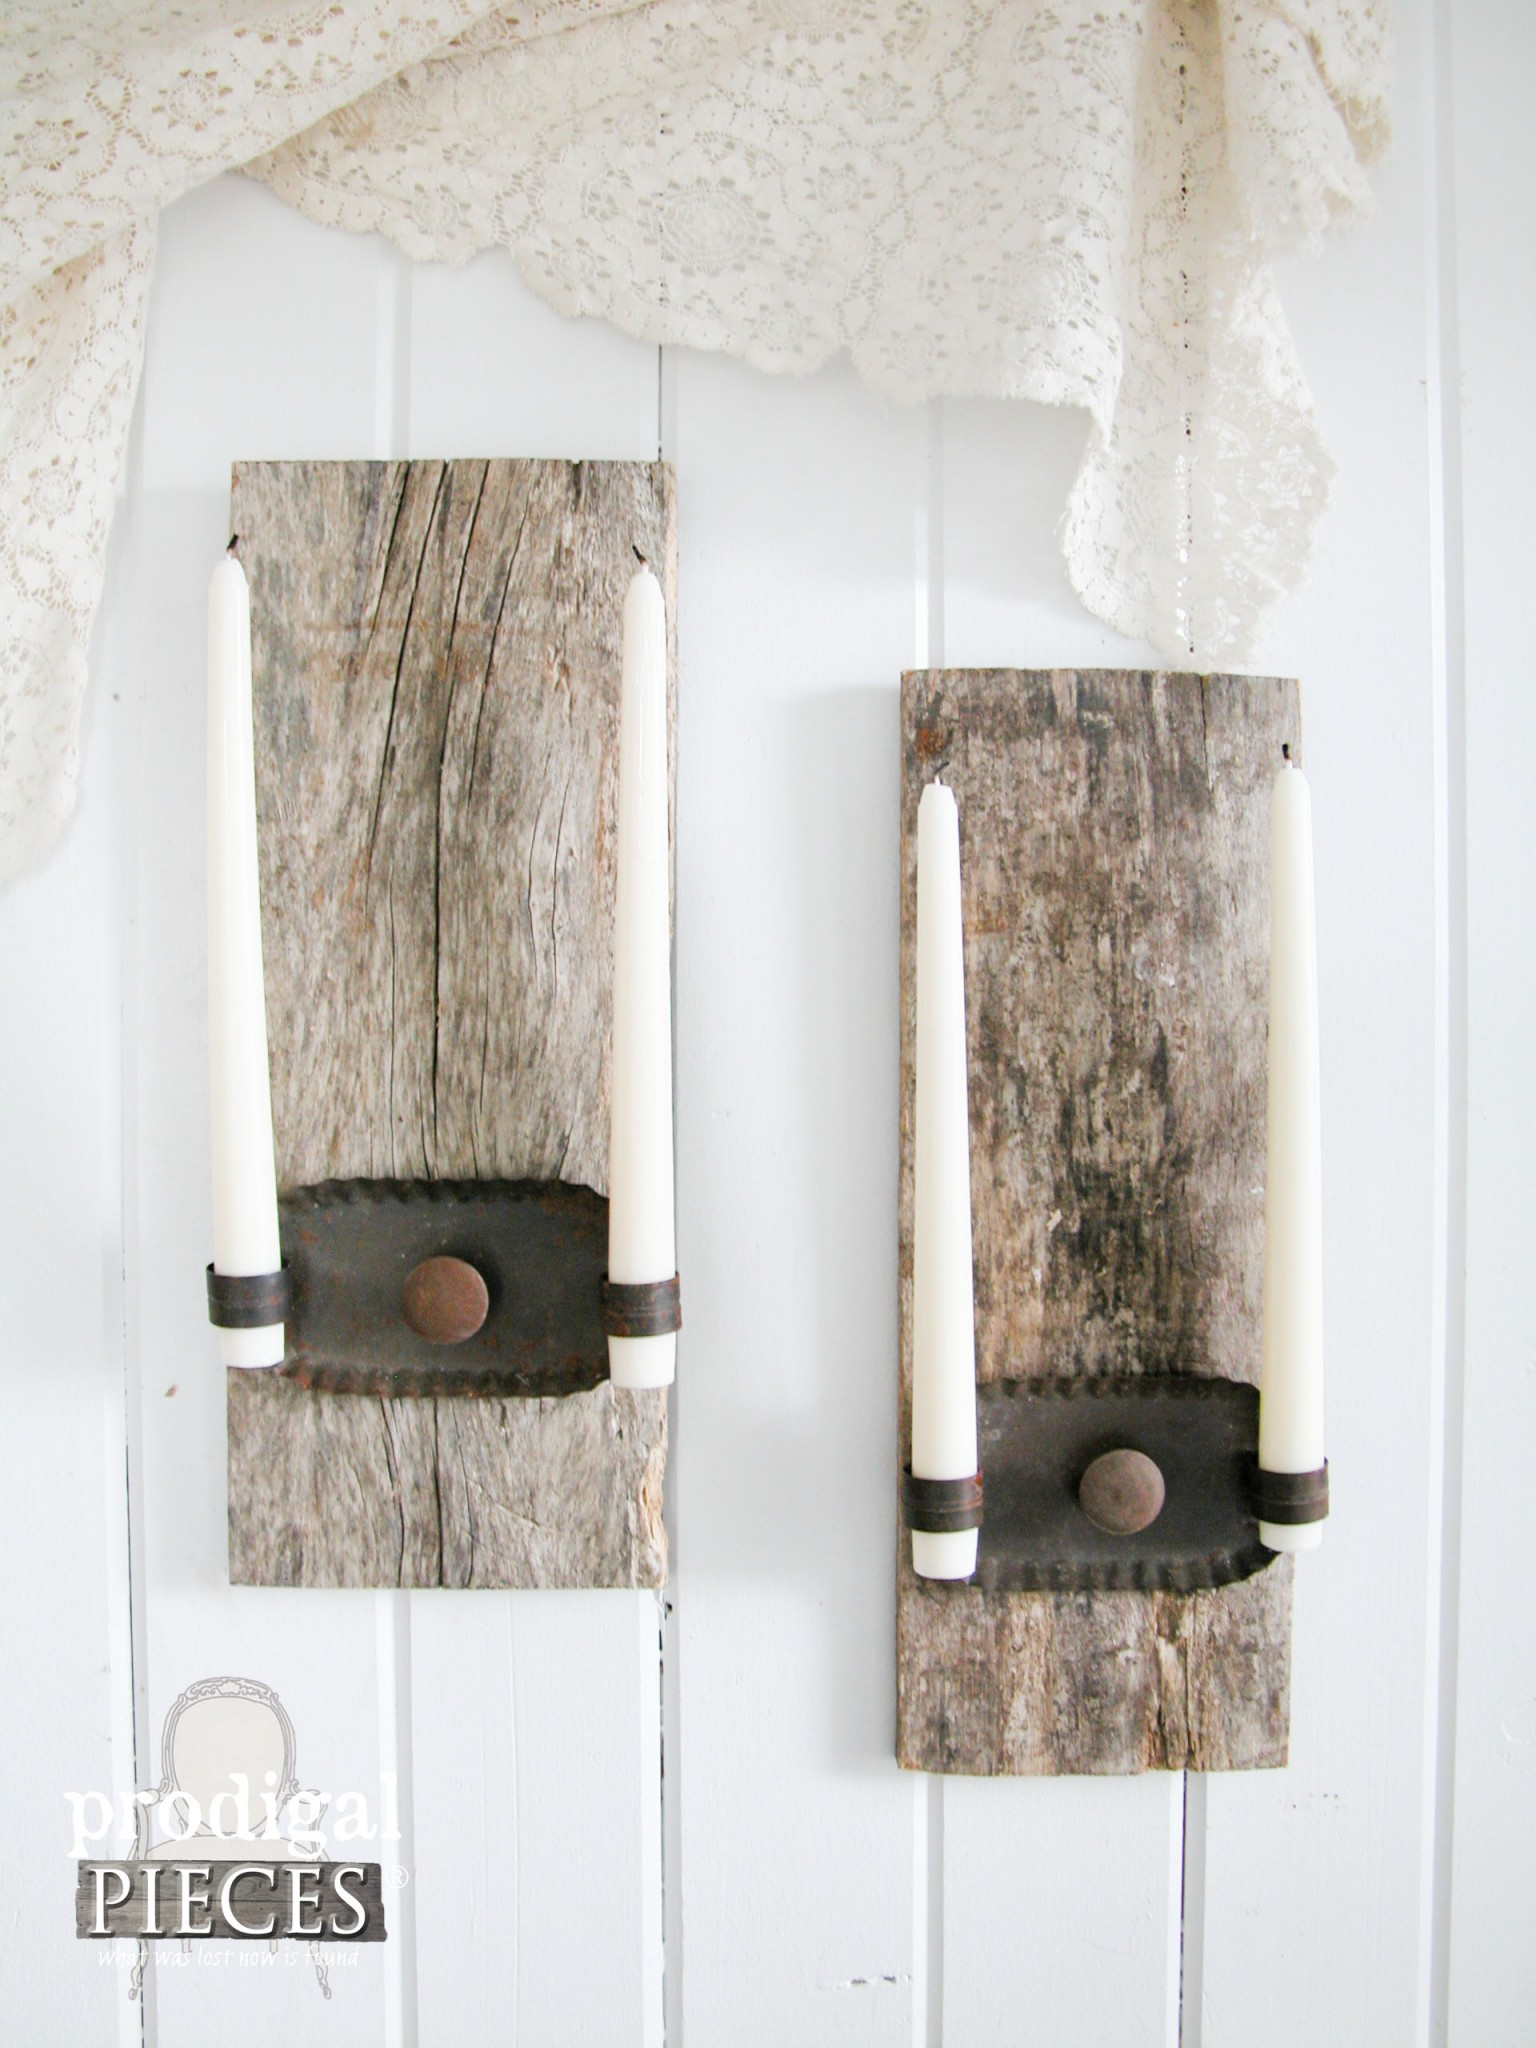 DIY Reclaimed Wood Candle Sconces by Prodigal Pieces | .prodigalpieces.com & Repurposed Candle Sconces from Barn Wood - Prodigal Pieces